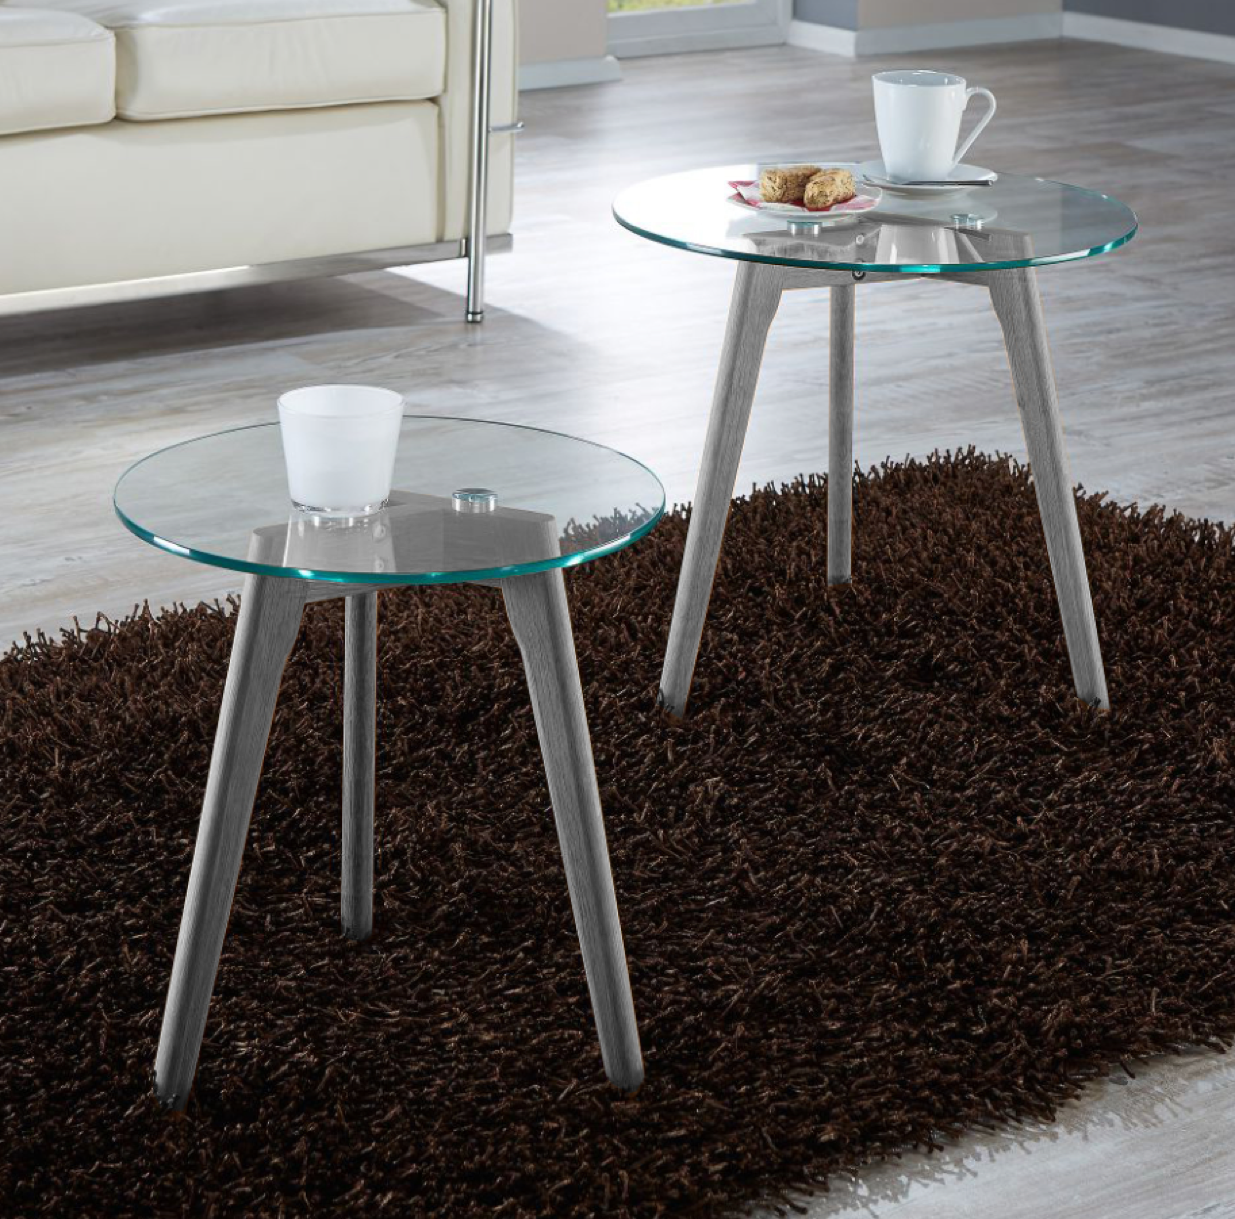 - Modern Nest Of Tables Round Coffee Table Set Of 2 With Glass Top